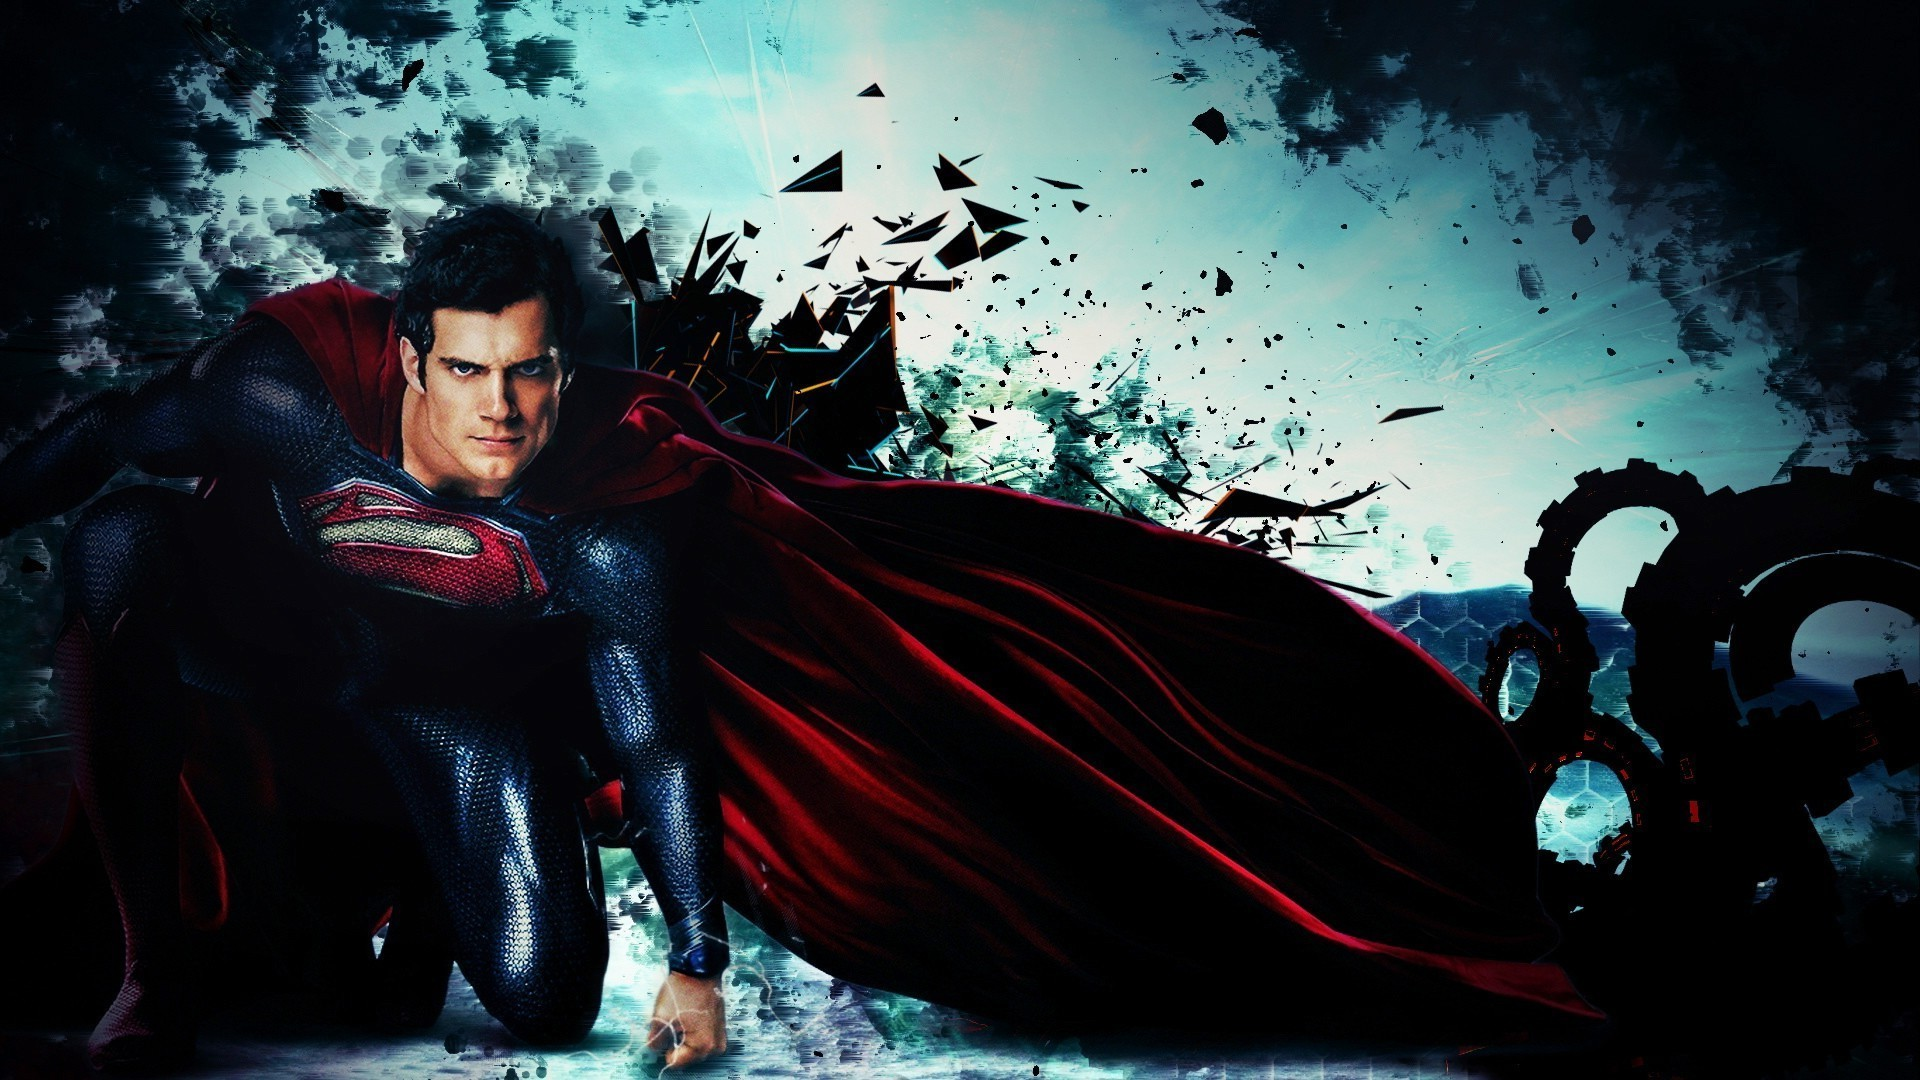 1920x1080  Download Wallpaper 750x1334 Man of steel, Superman, Henry cavill  ... | Download Wallpaper | Pinterest | Superman henry cavill and Wallpaper